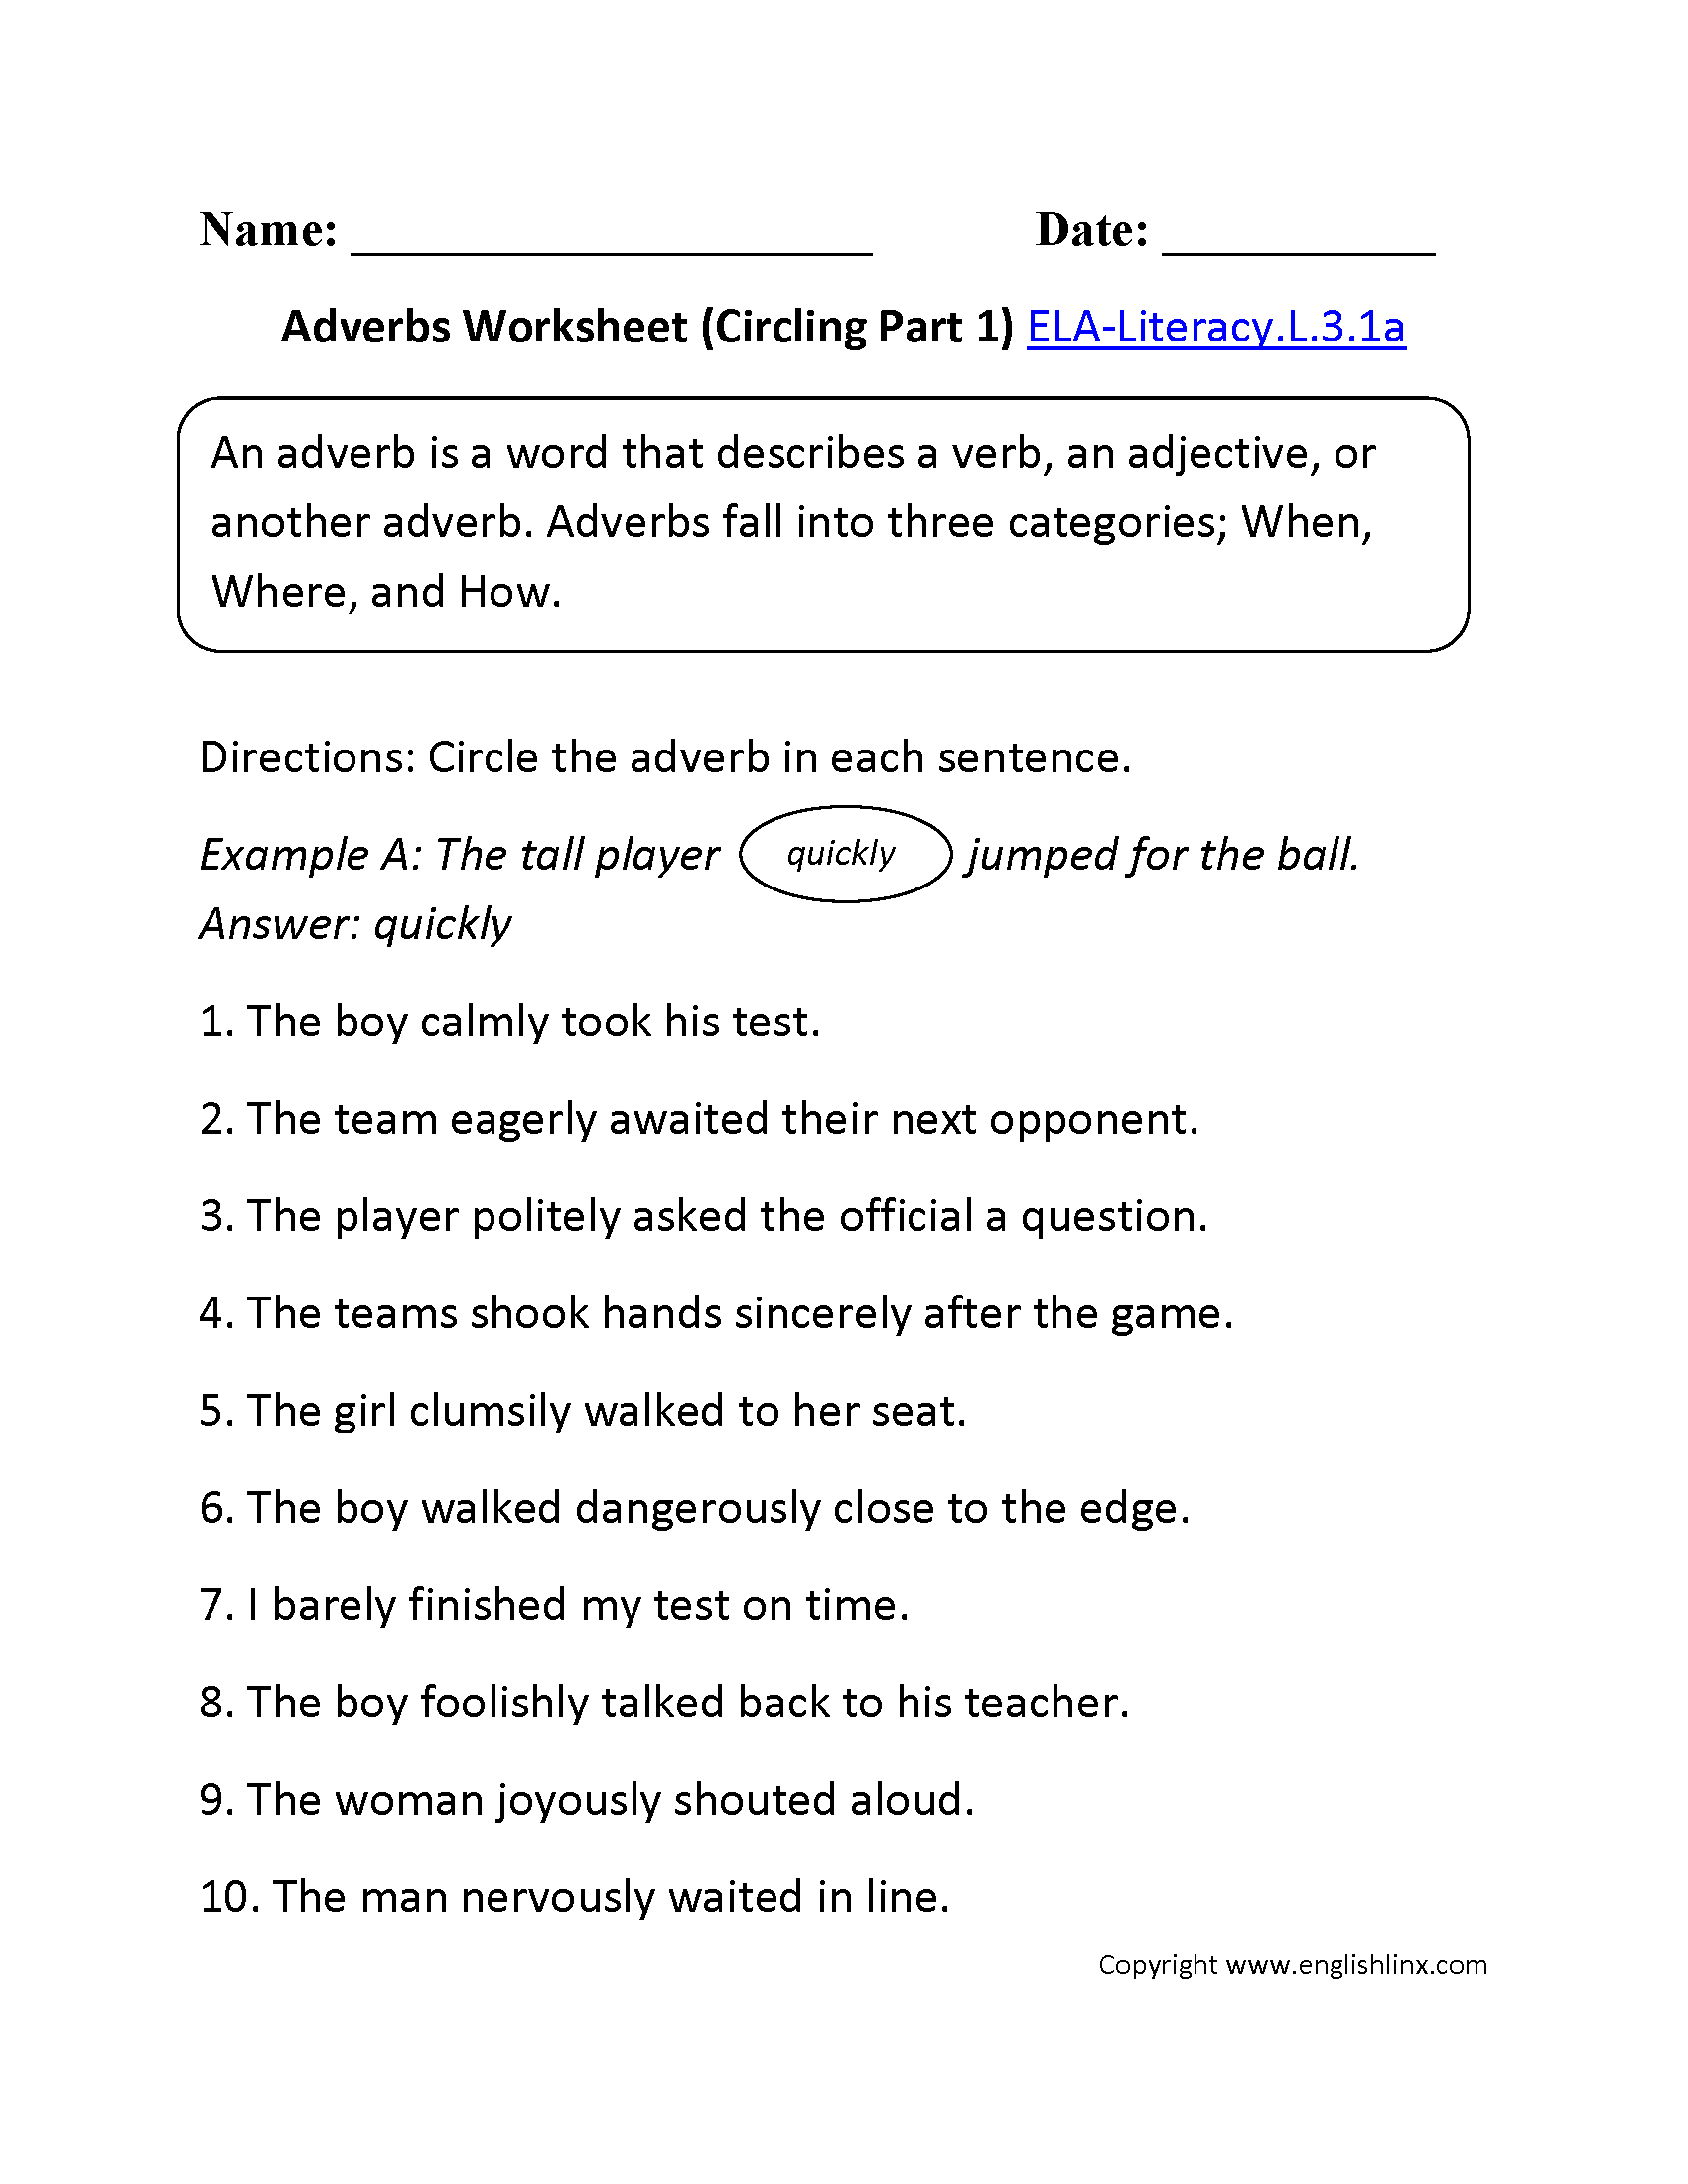 Adjectives Worksheet 1 ELA-Literacy.L.3.1a Language Worksheet ...